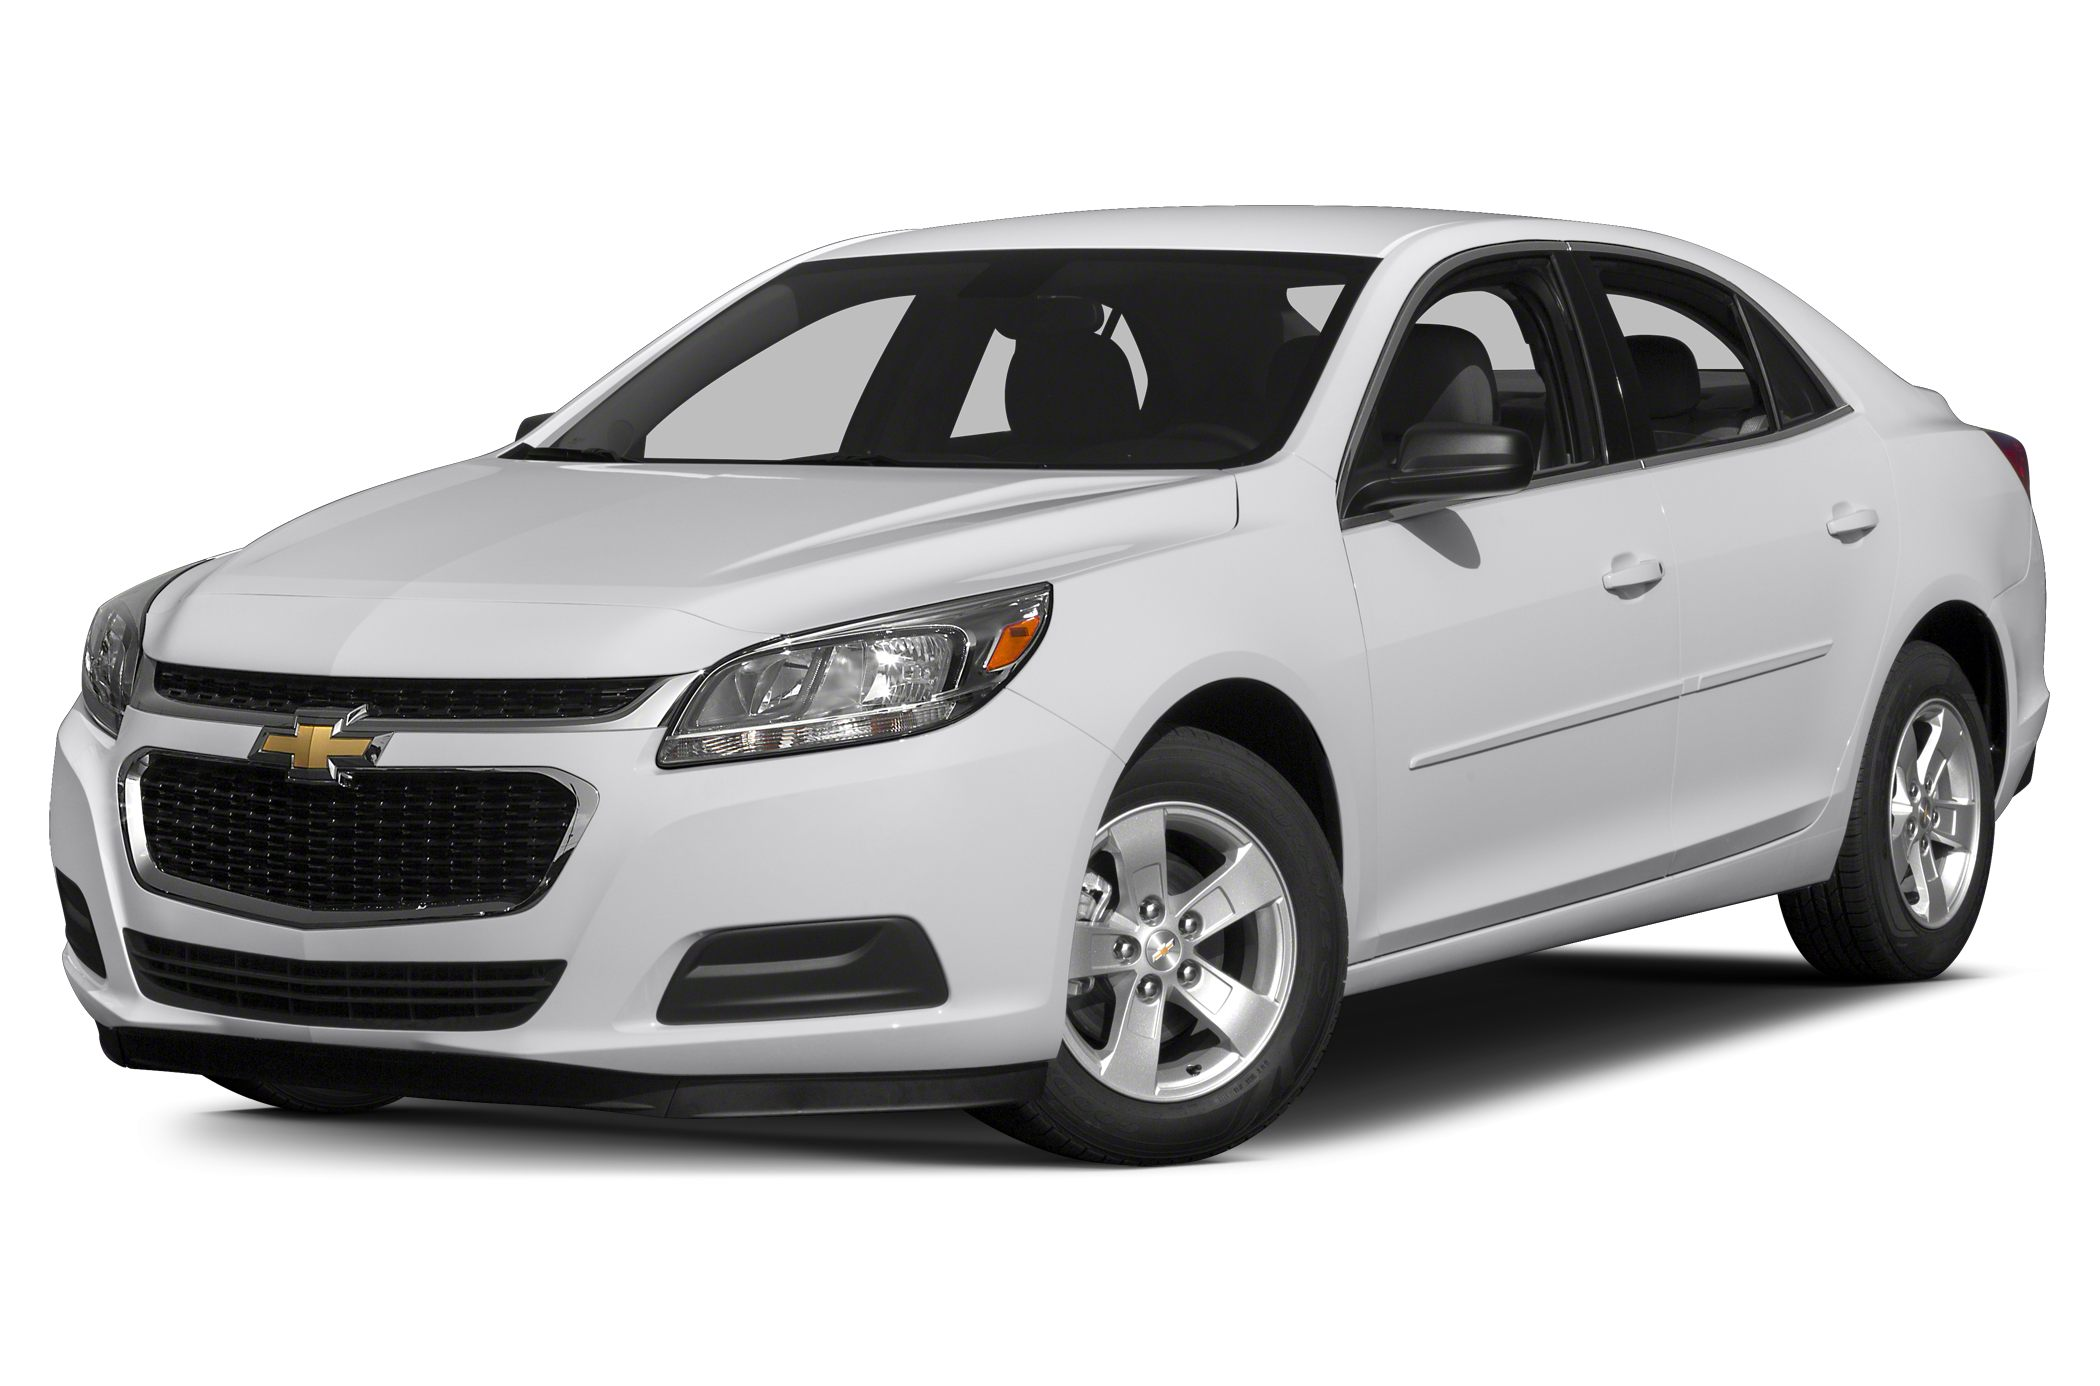 2015 Chevrolet Malibu 1LT Sedan for sale in Pinehurst for $27,325 with 48 miles